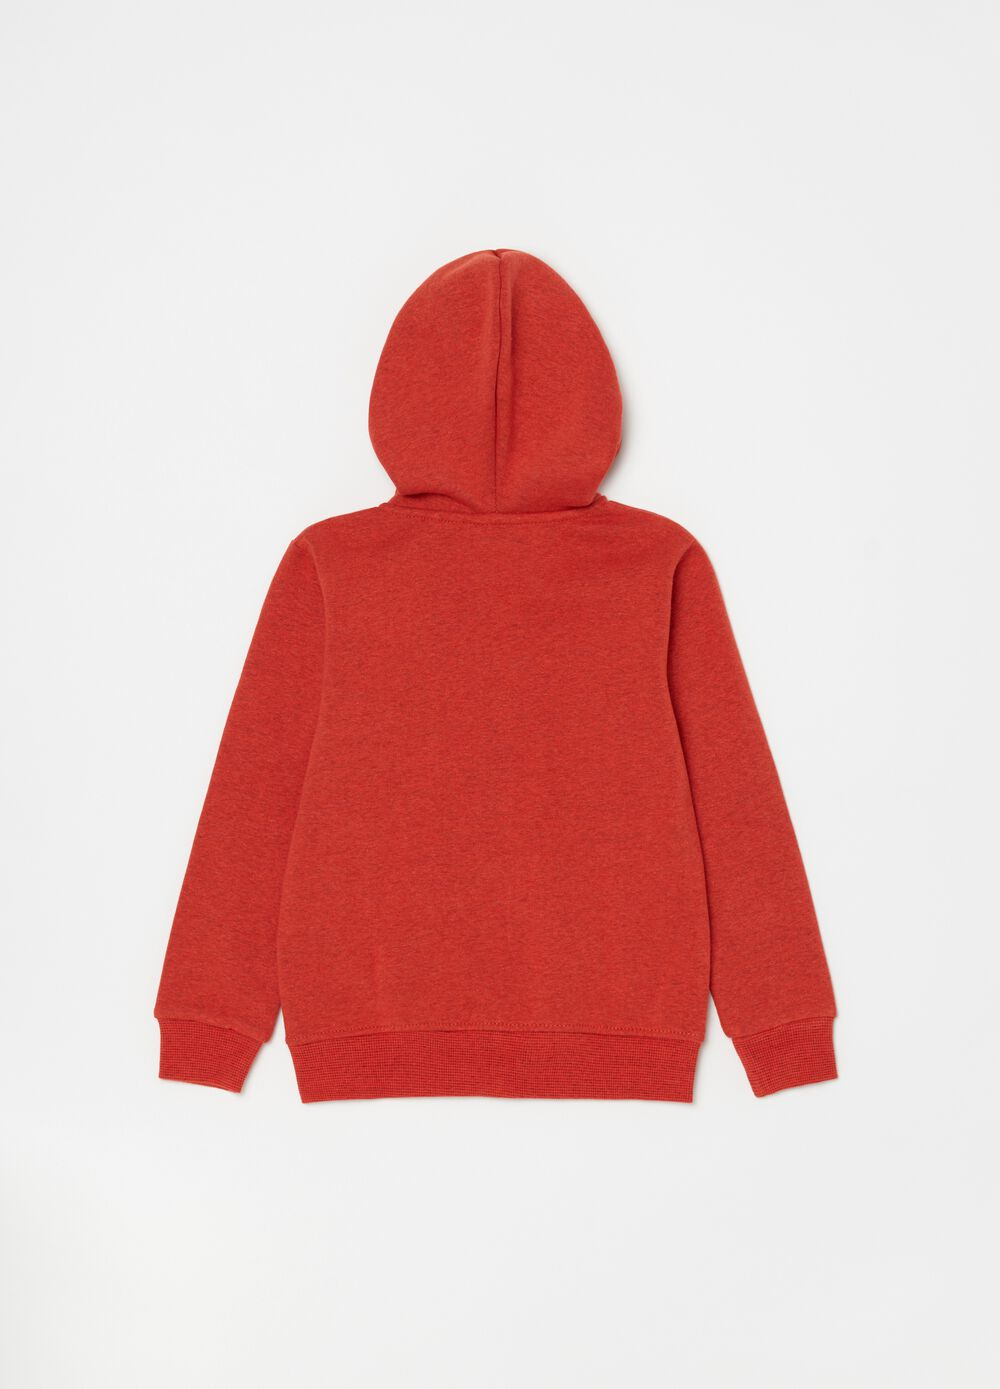 Mélange sweatshirt with hood and zip